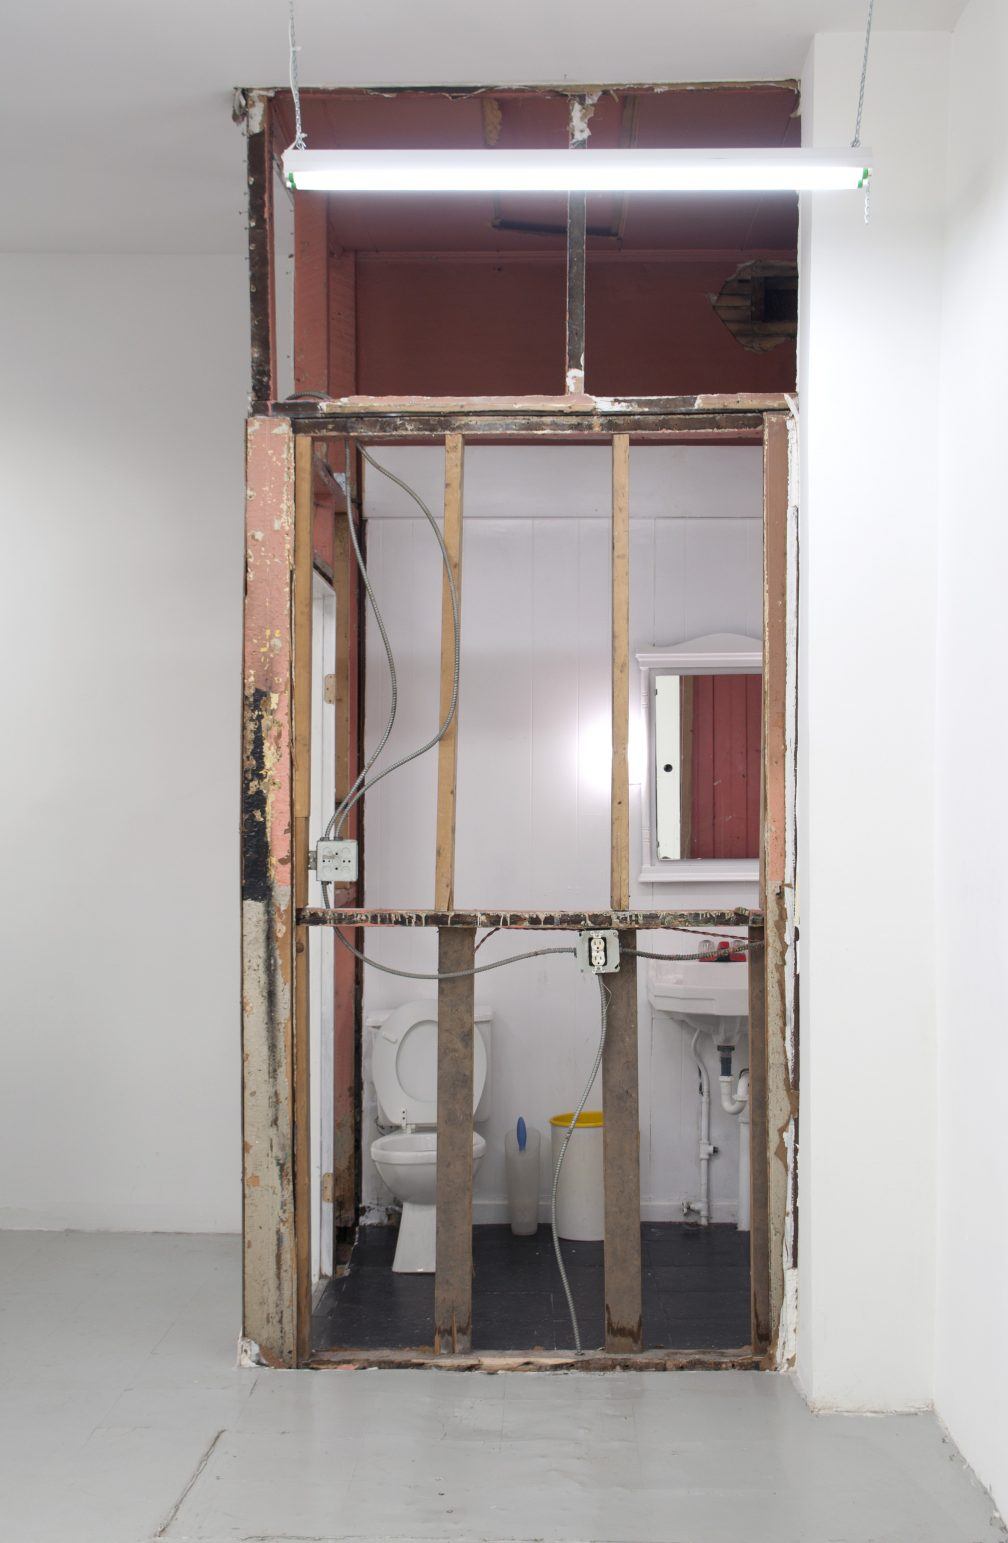 Untitled (Skeleton), bathroom drywall removal, 2014